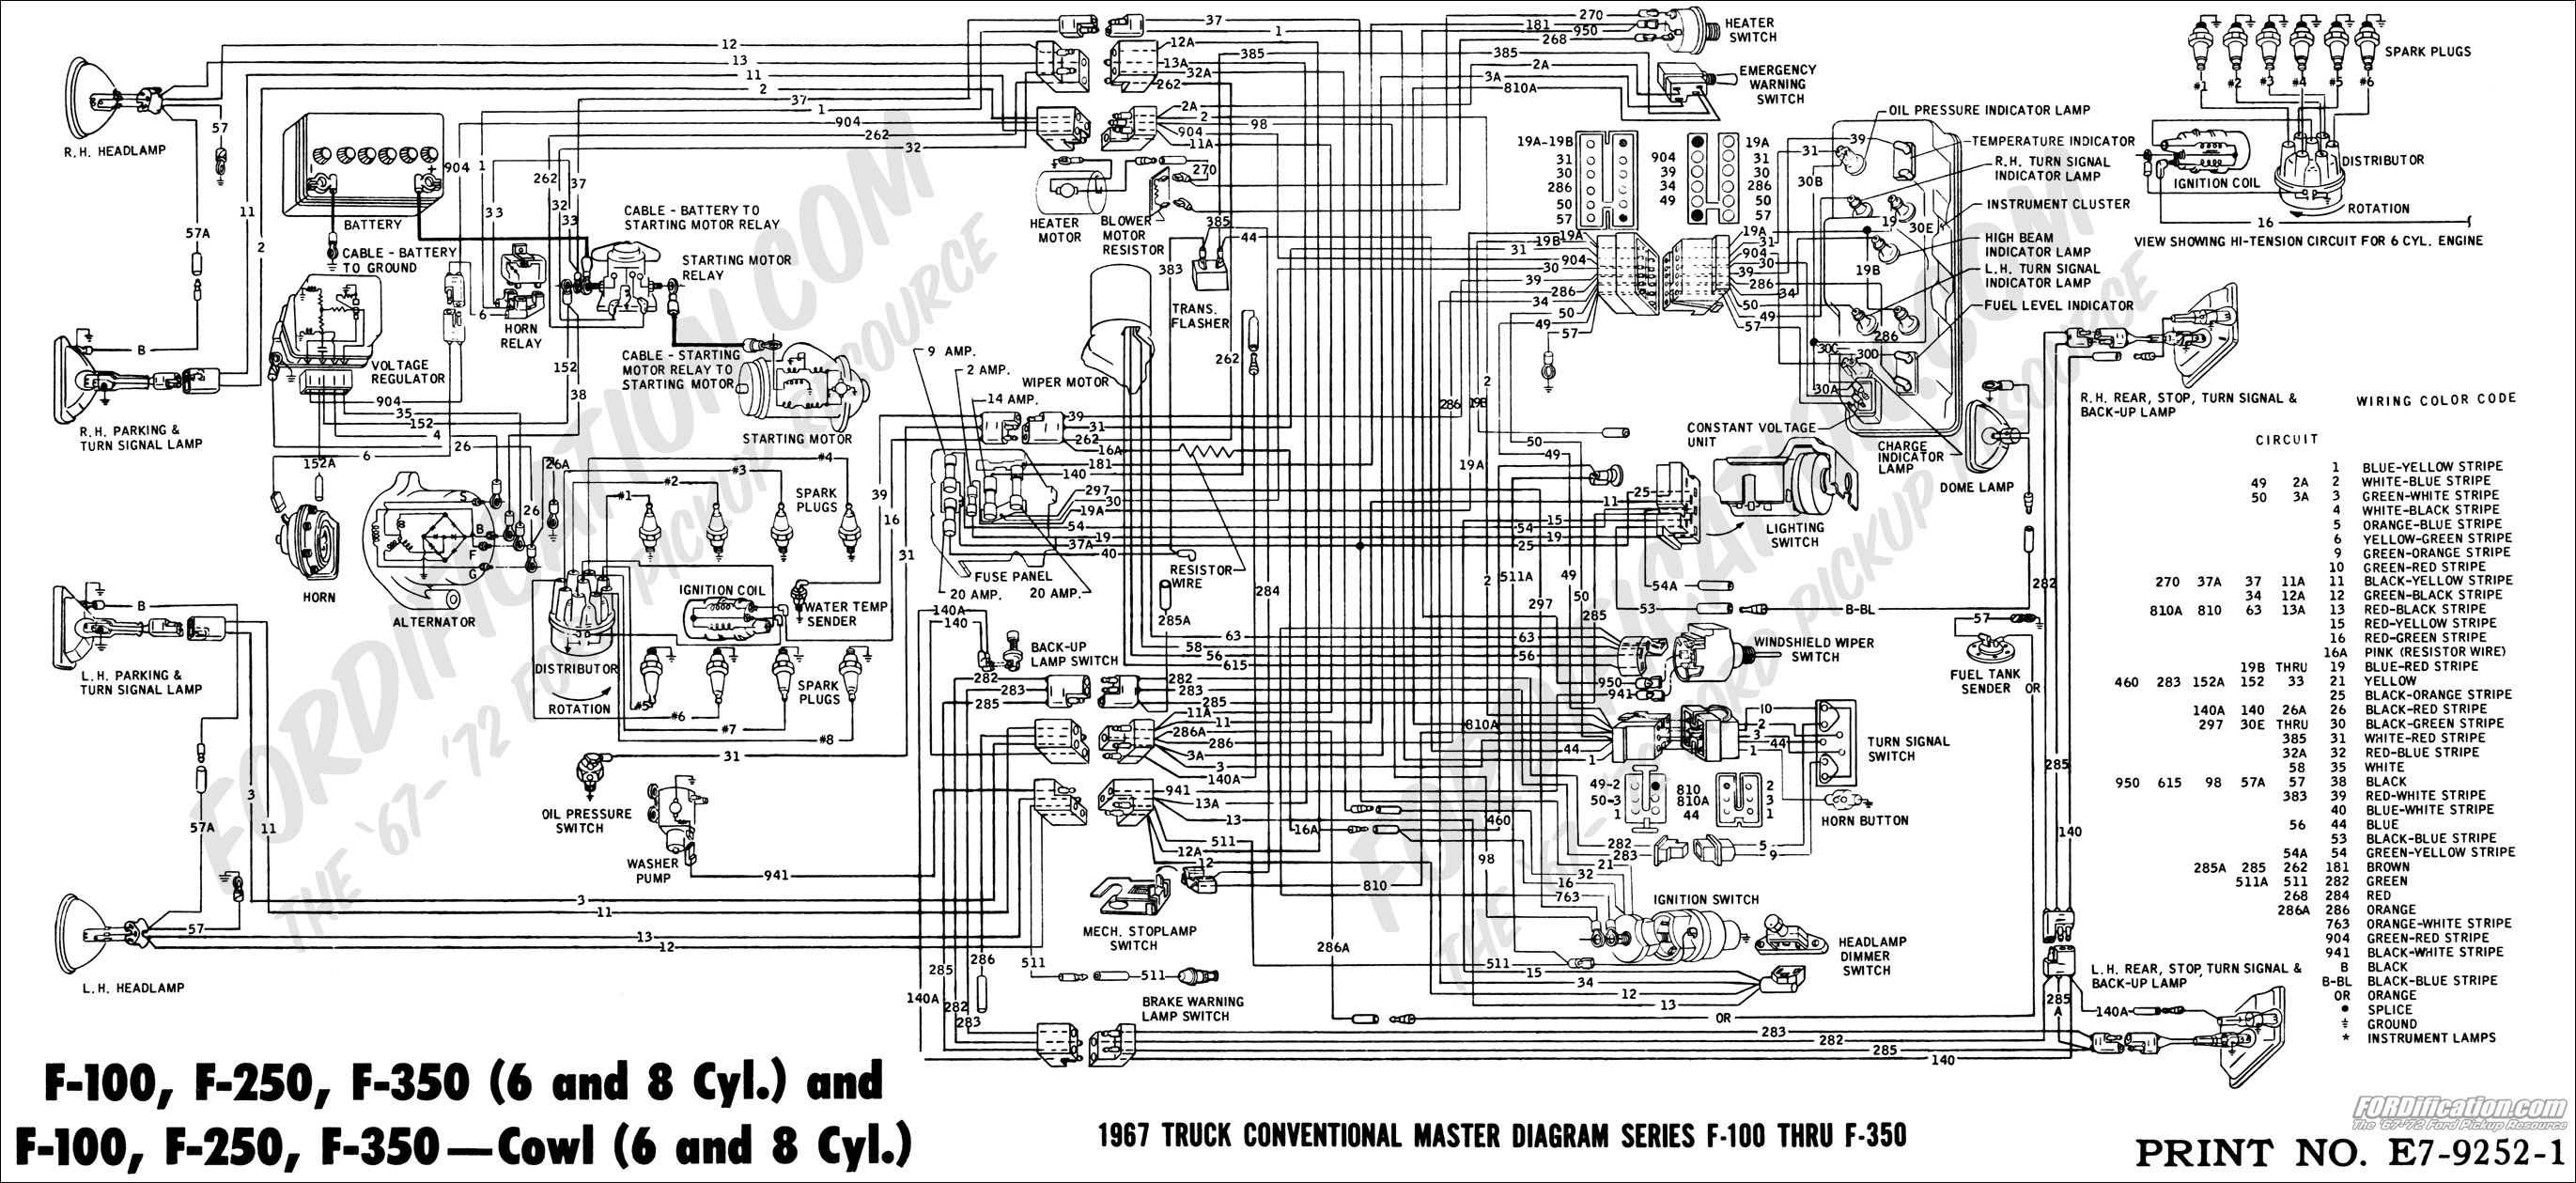 1996 Jeep Cherokee Fuel Pump Wiring Diagram Custom Project Images Gallery Ford Truck Technical Drawings And Schematics Section H